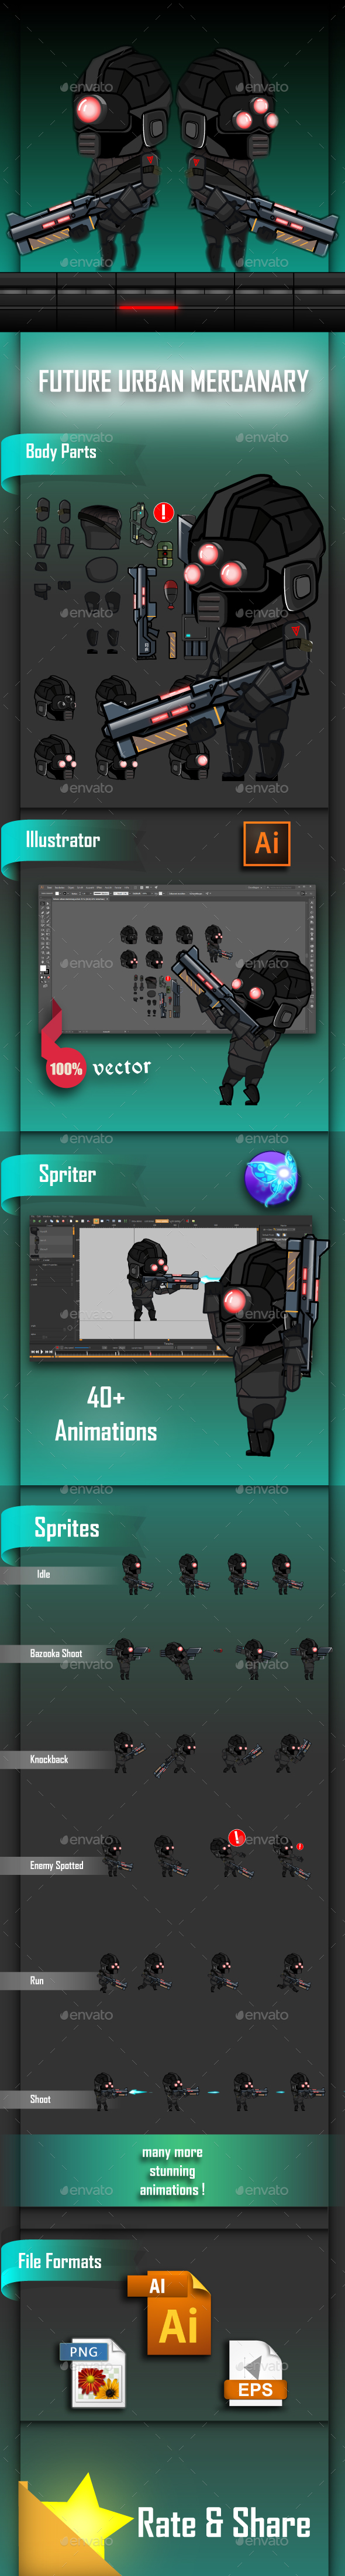 GraphicRiver Future Urban Mercenary Game Character Sprites 20604759